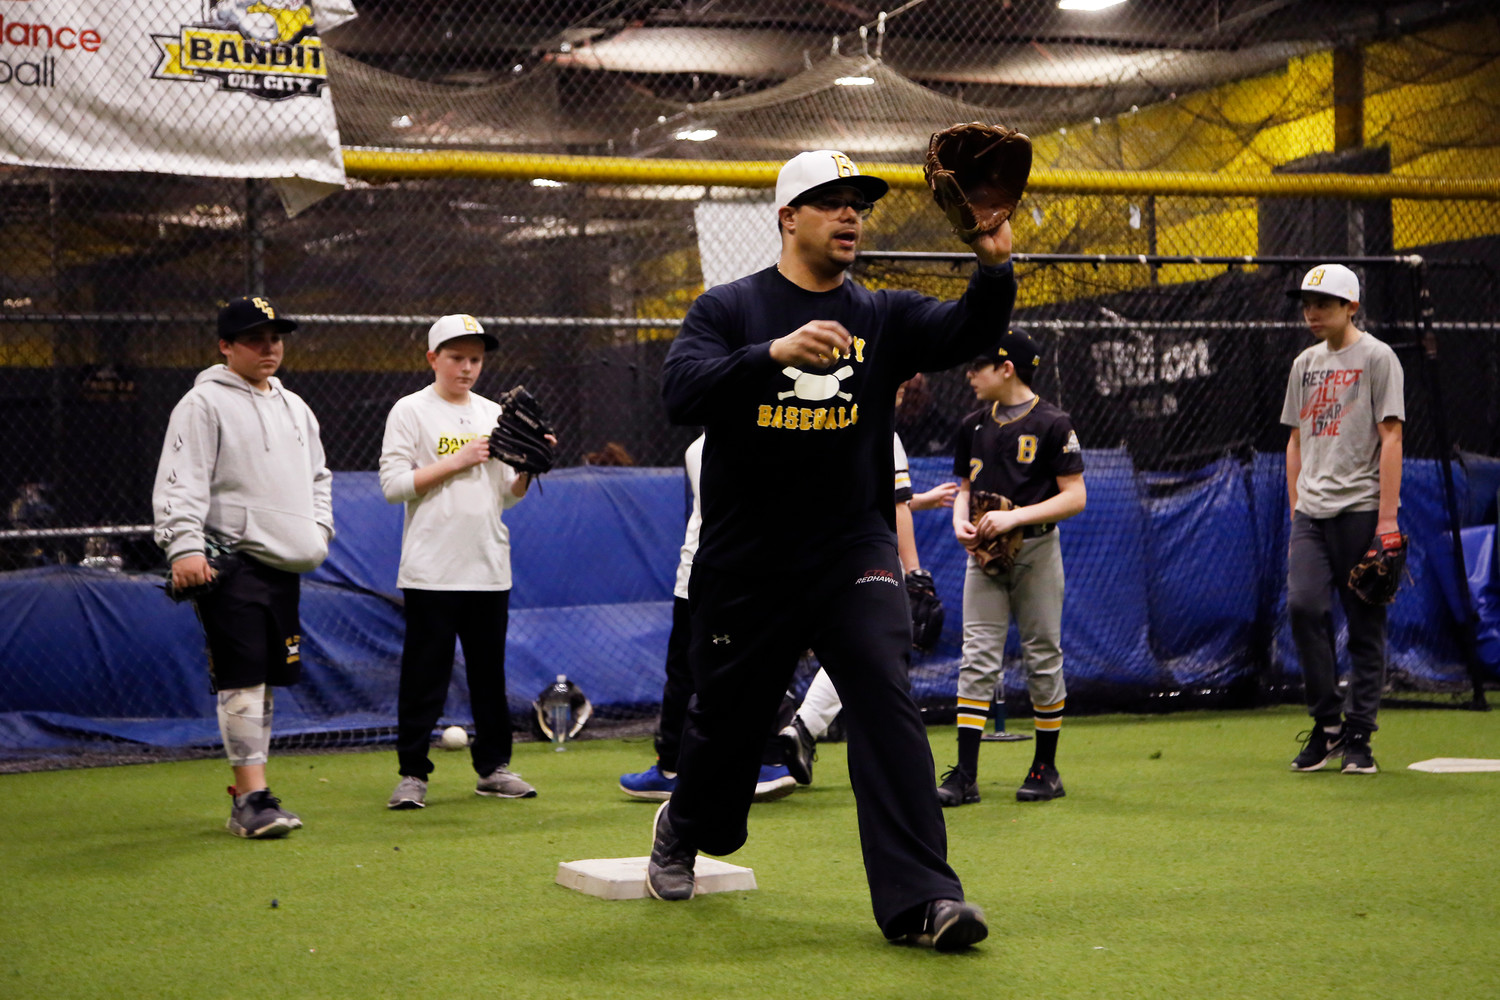 Coach Christian Paulino shows the 12-year old leaguers the proper way of catching in the infield.